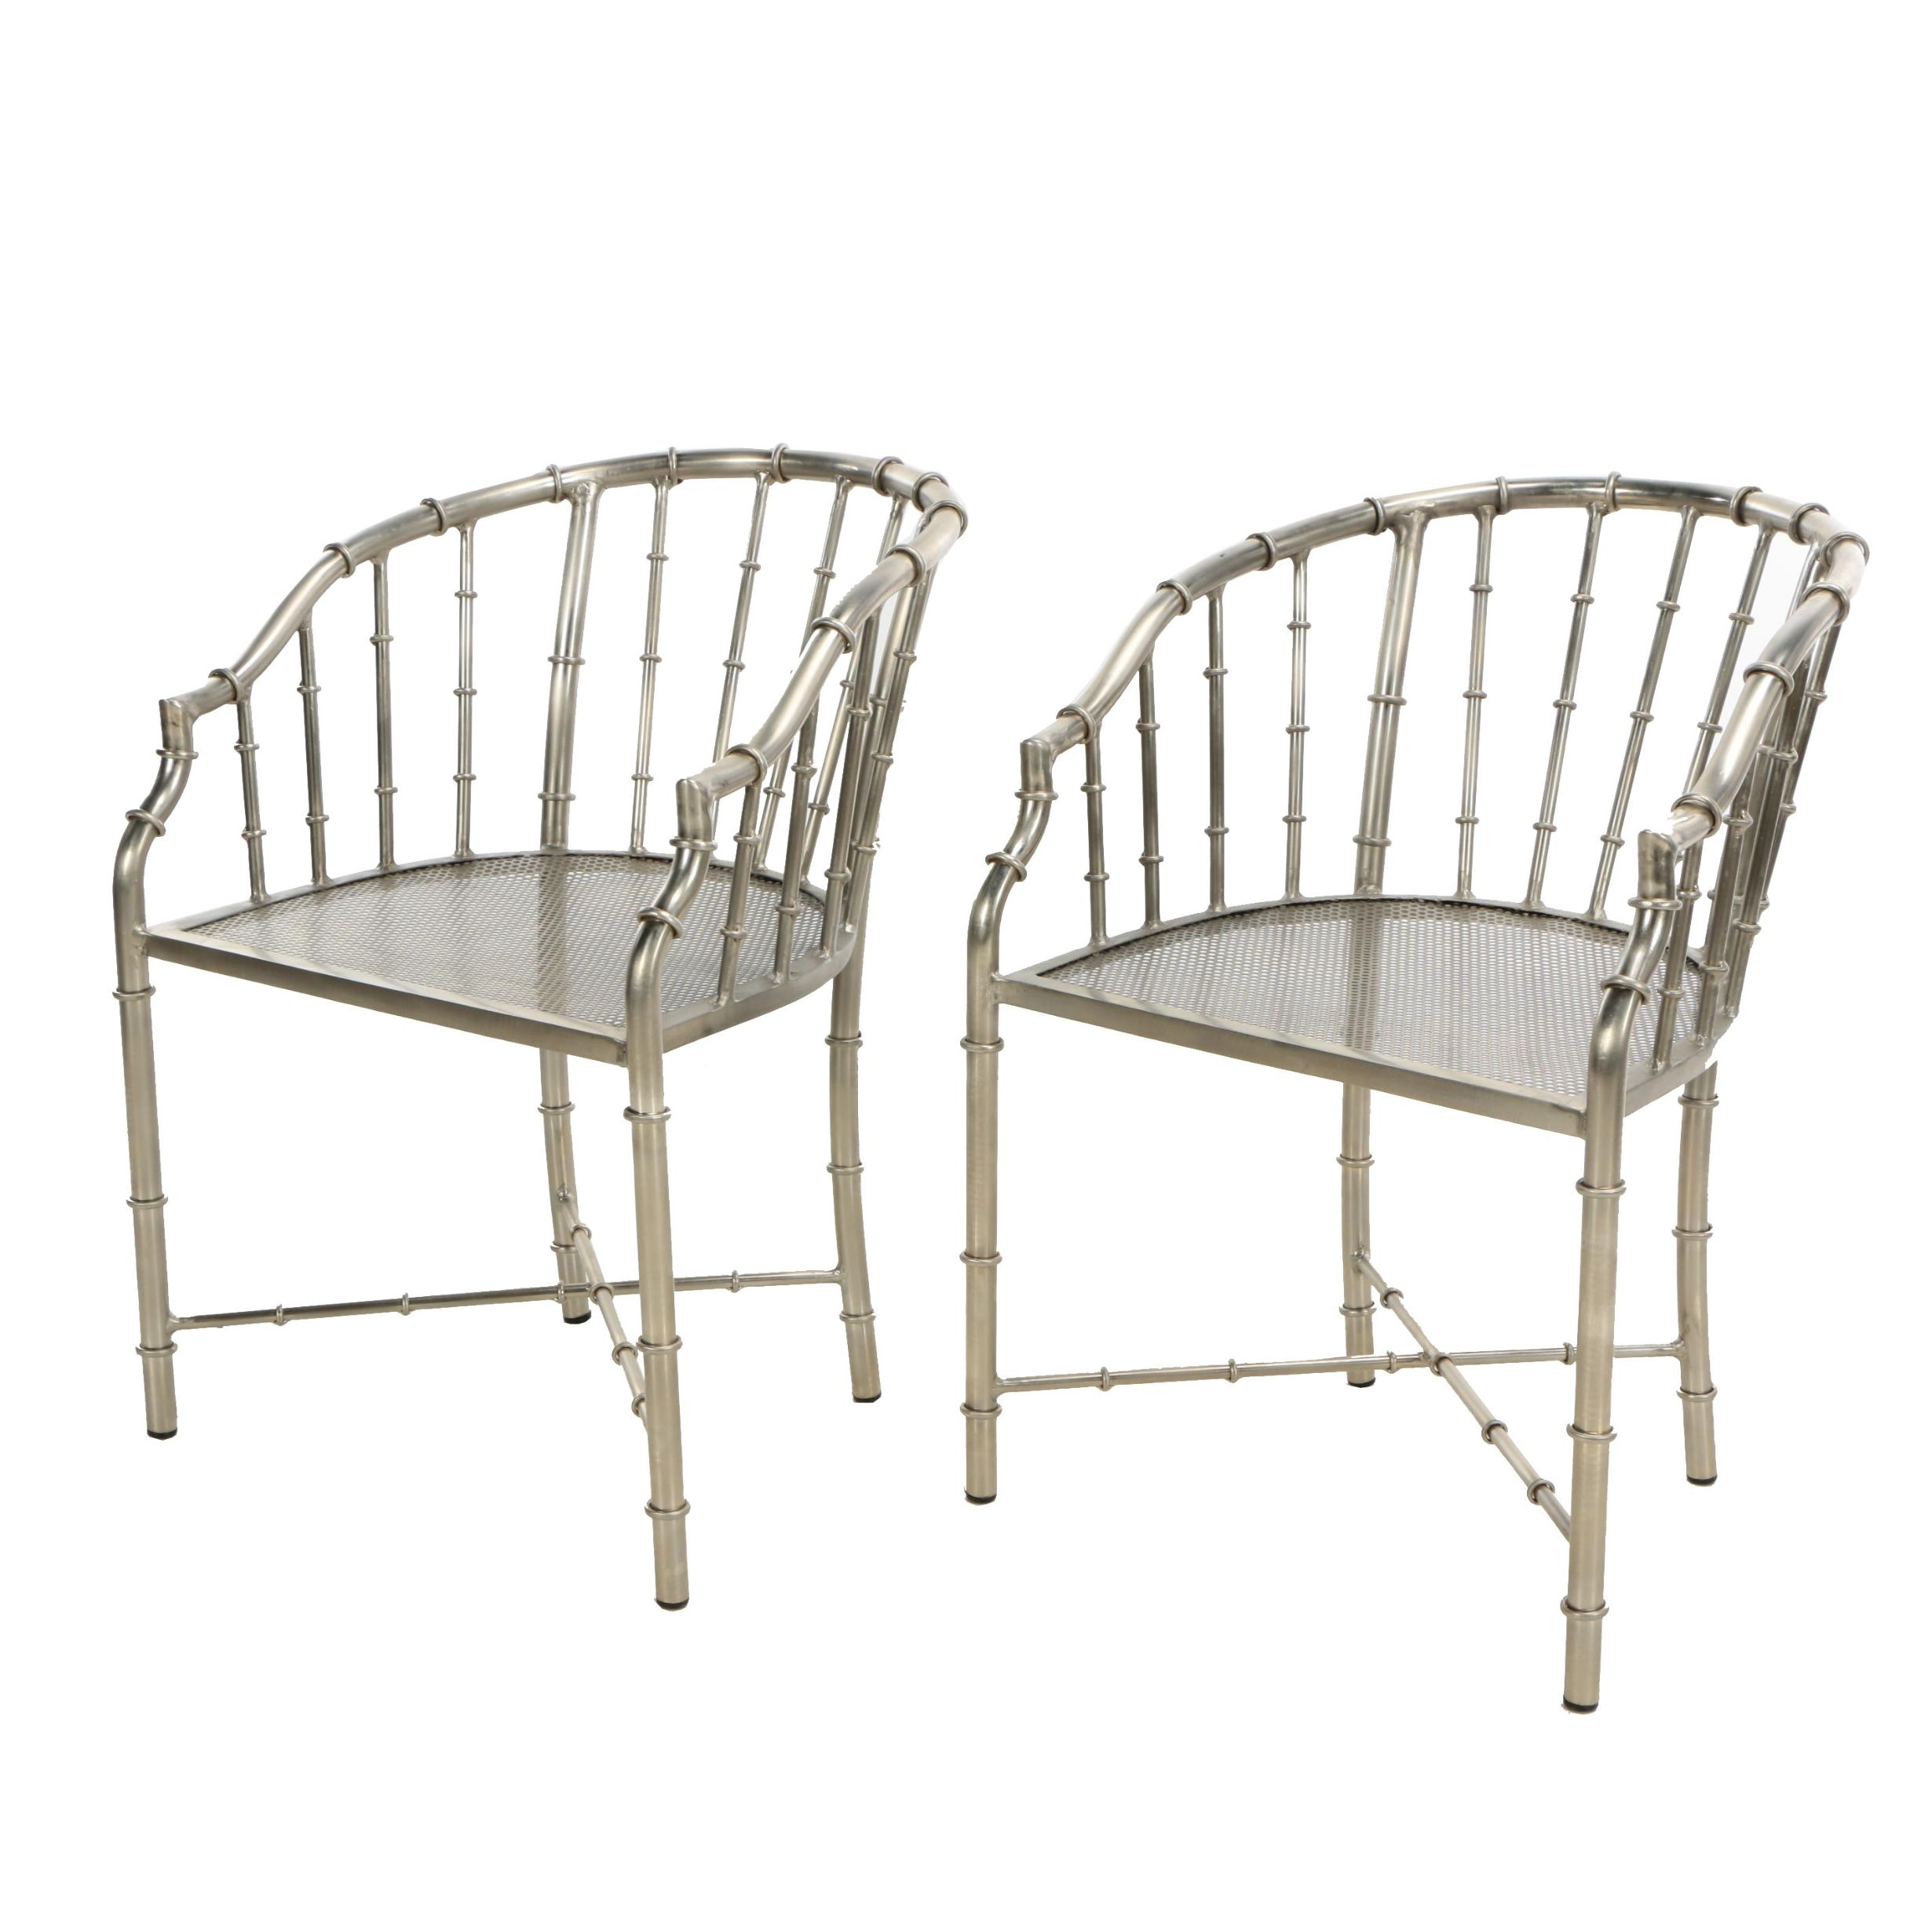 "Chinese Chippendale Style ""Bamboo"" Silver Tone Metal Armchairs, 21st Century"